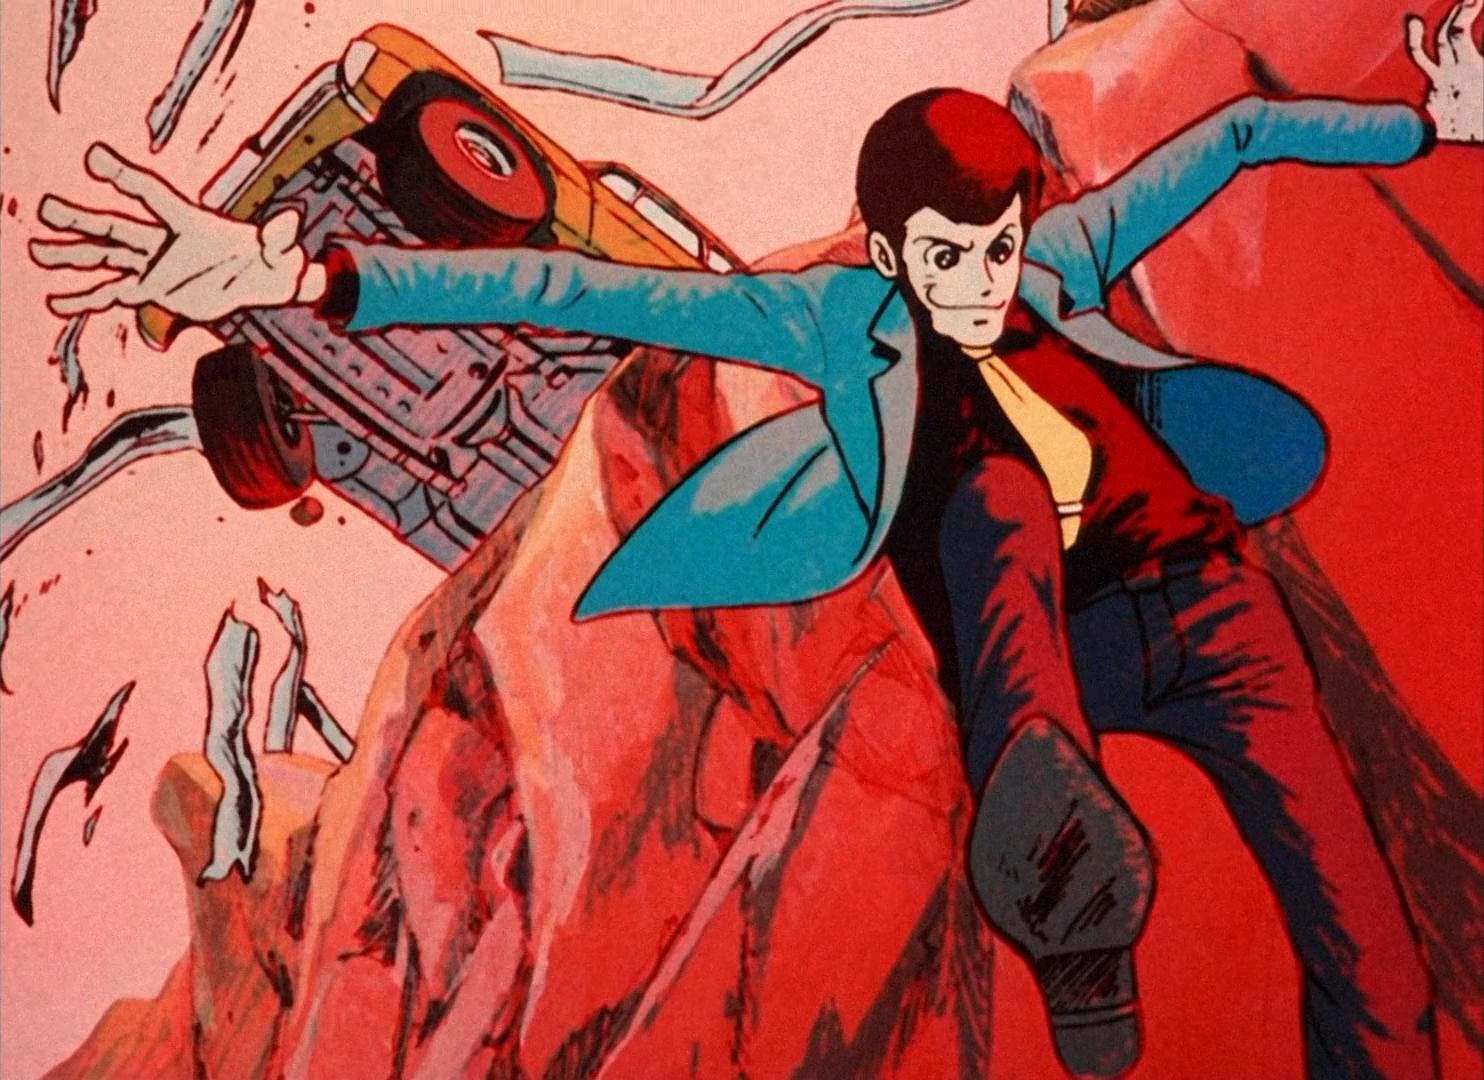 Lupin the 3rd Part I